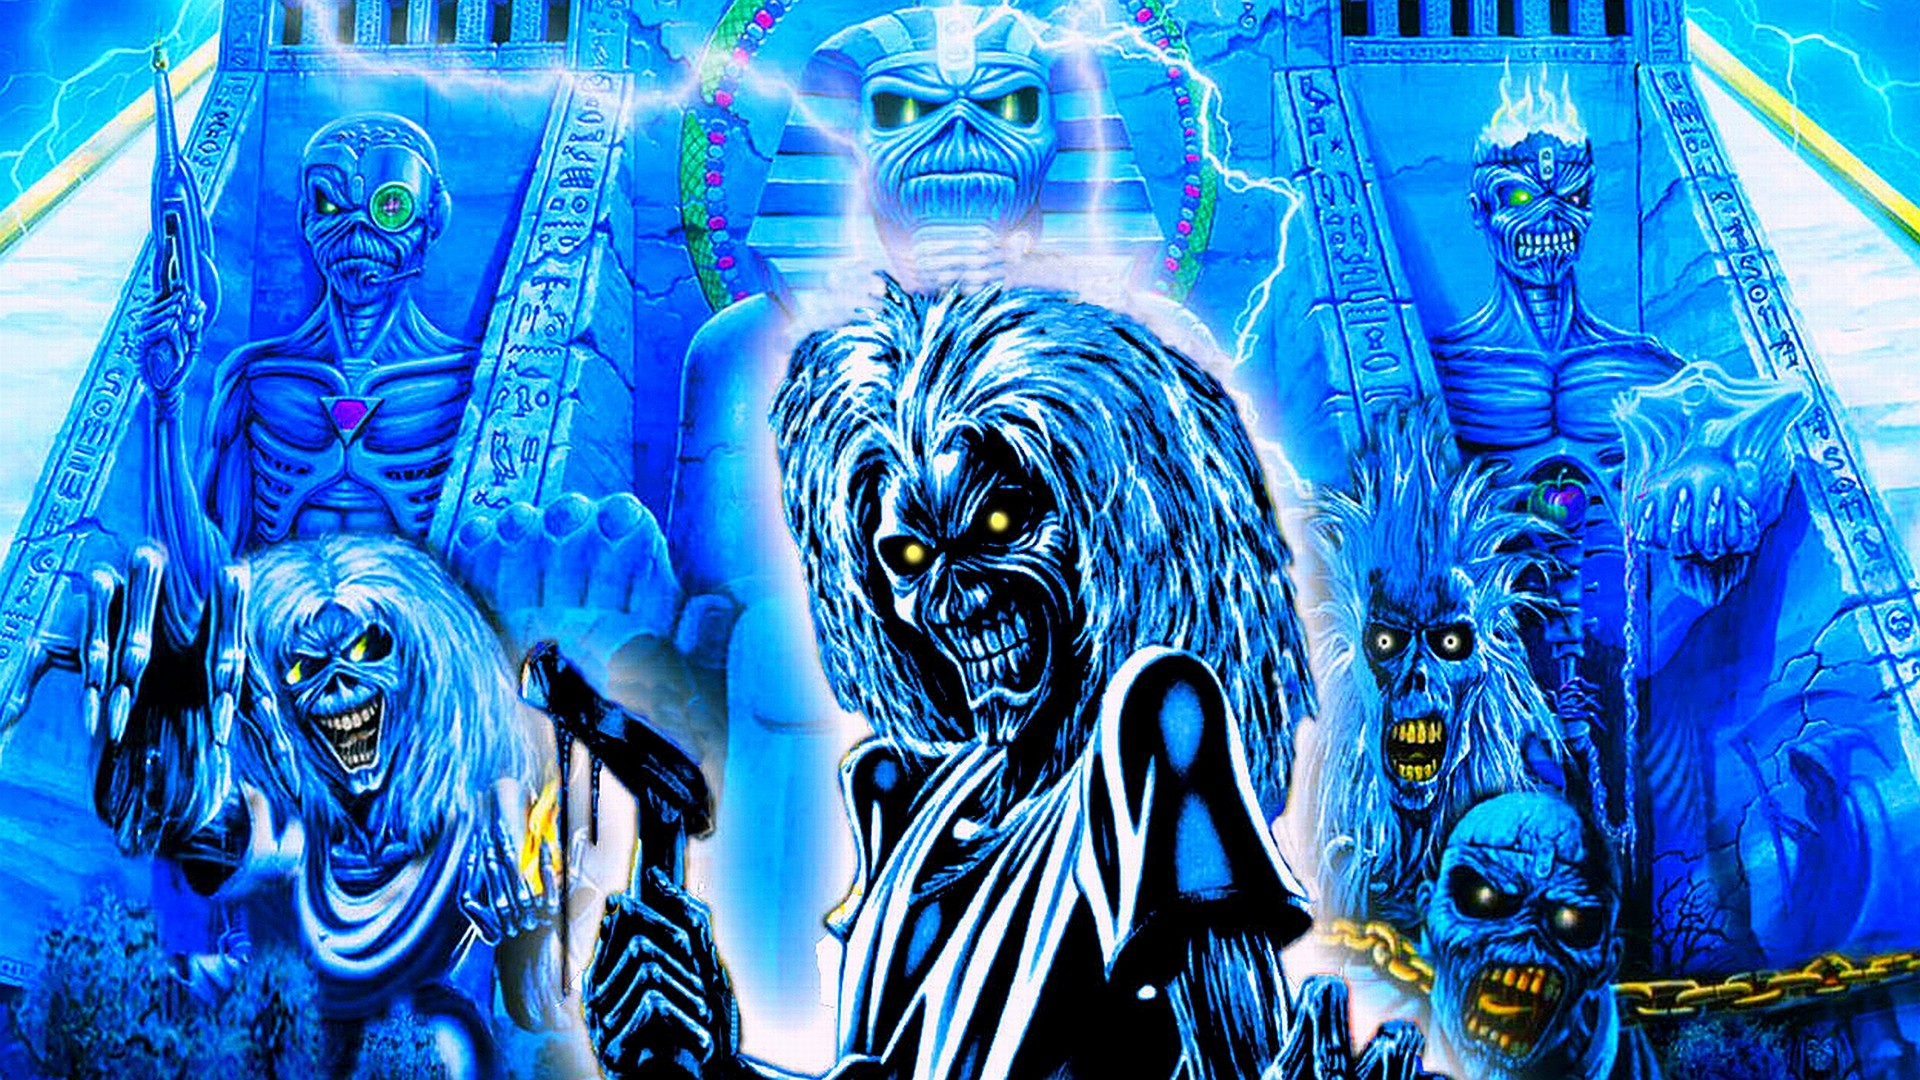 1920x1080 Iron maiden bands groups entertainment hard rock heavy metal eddie album art  dark skulls covers wallpaper |  | 25051 | WallpaperUP